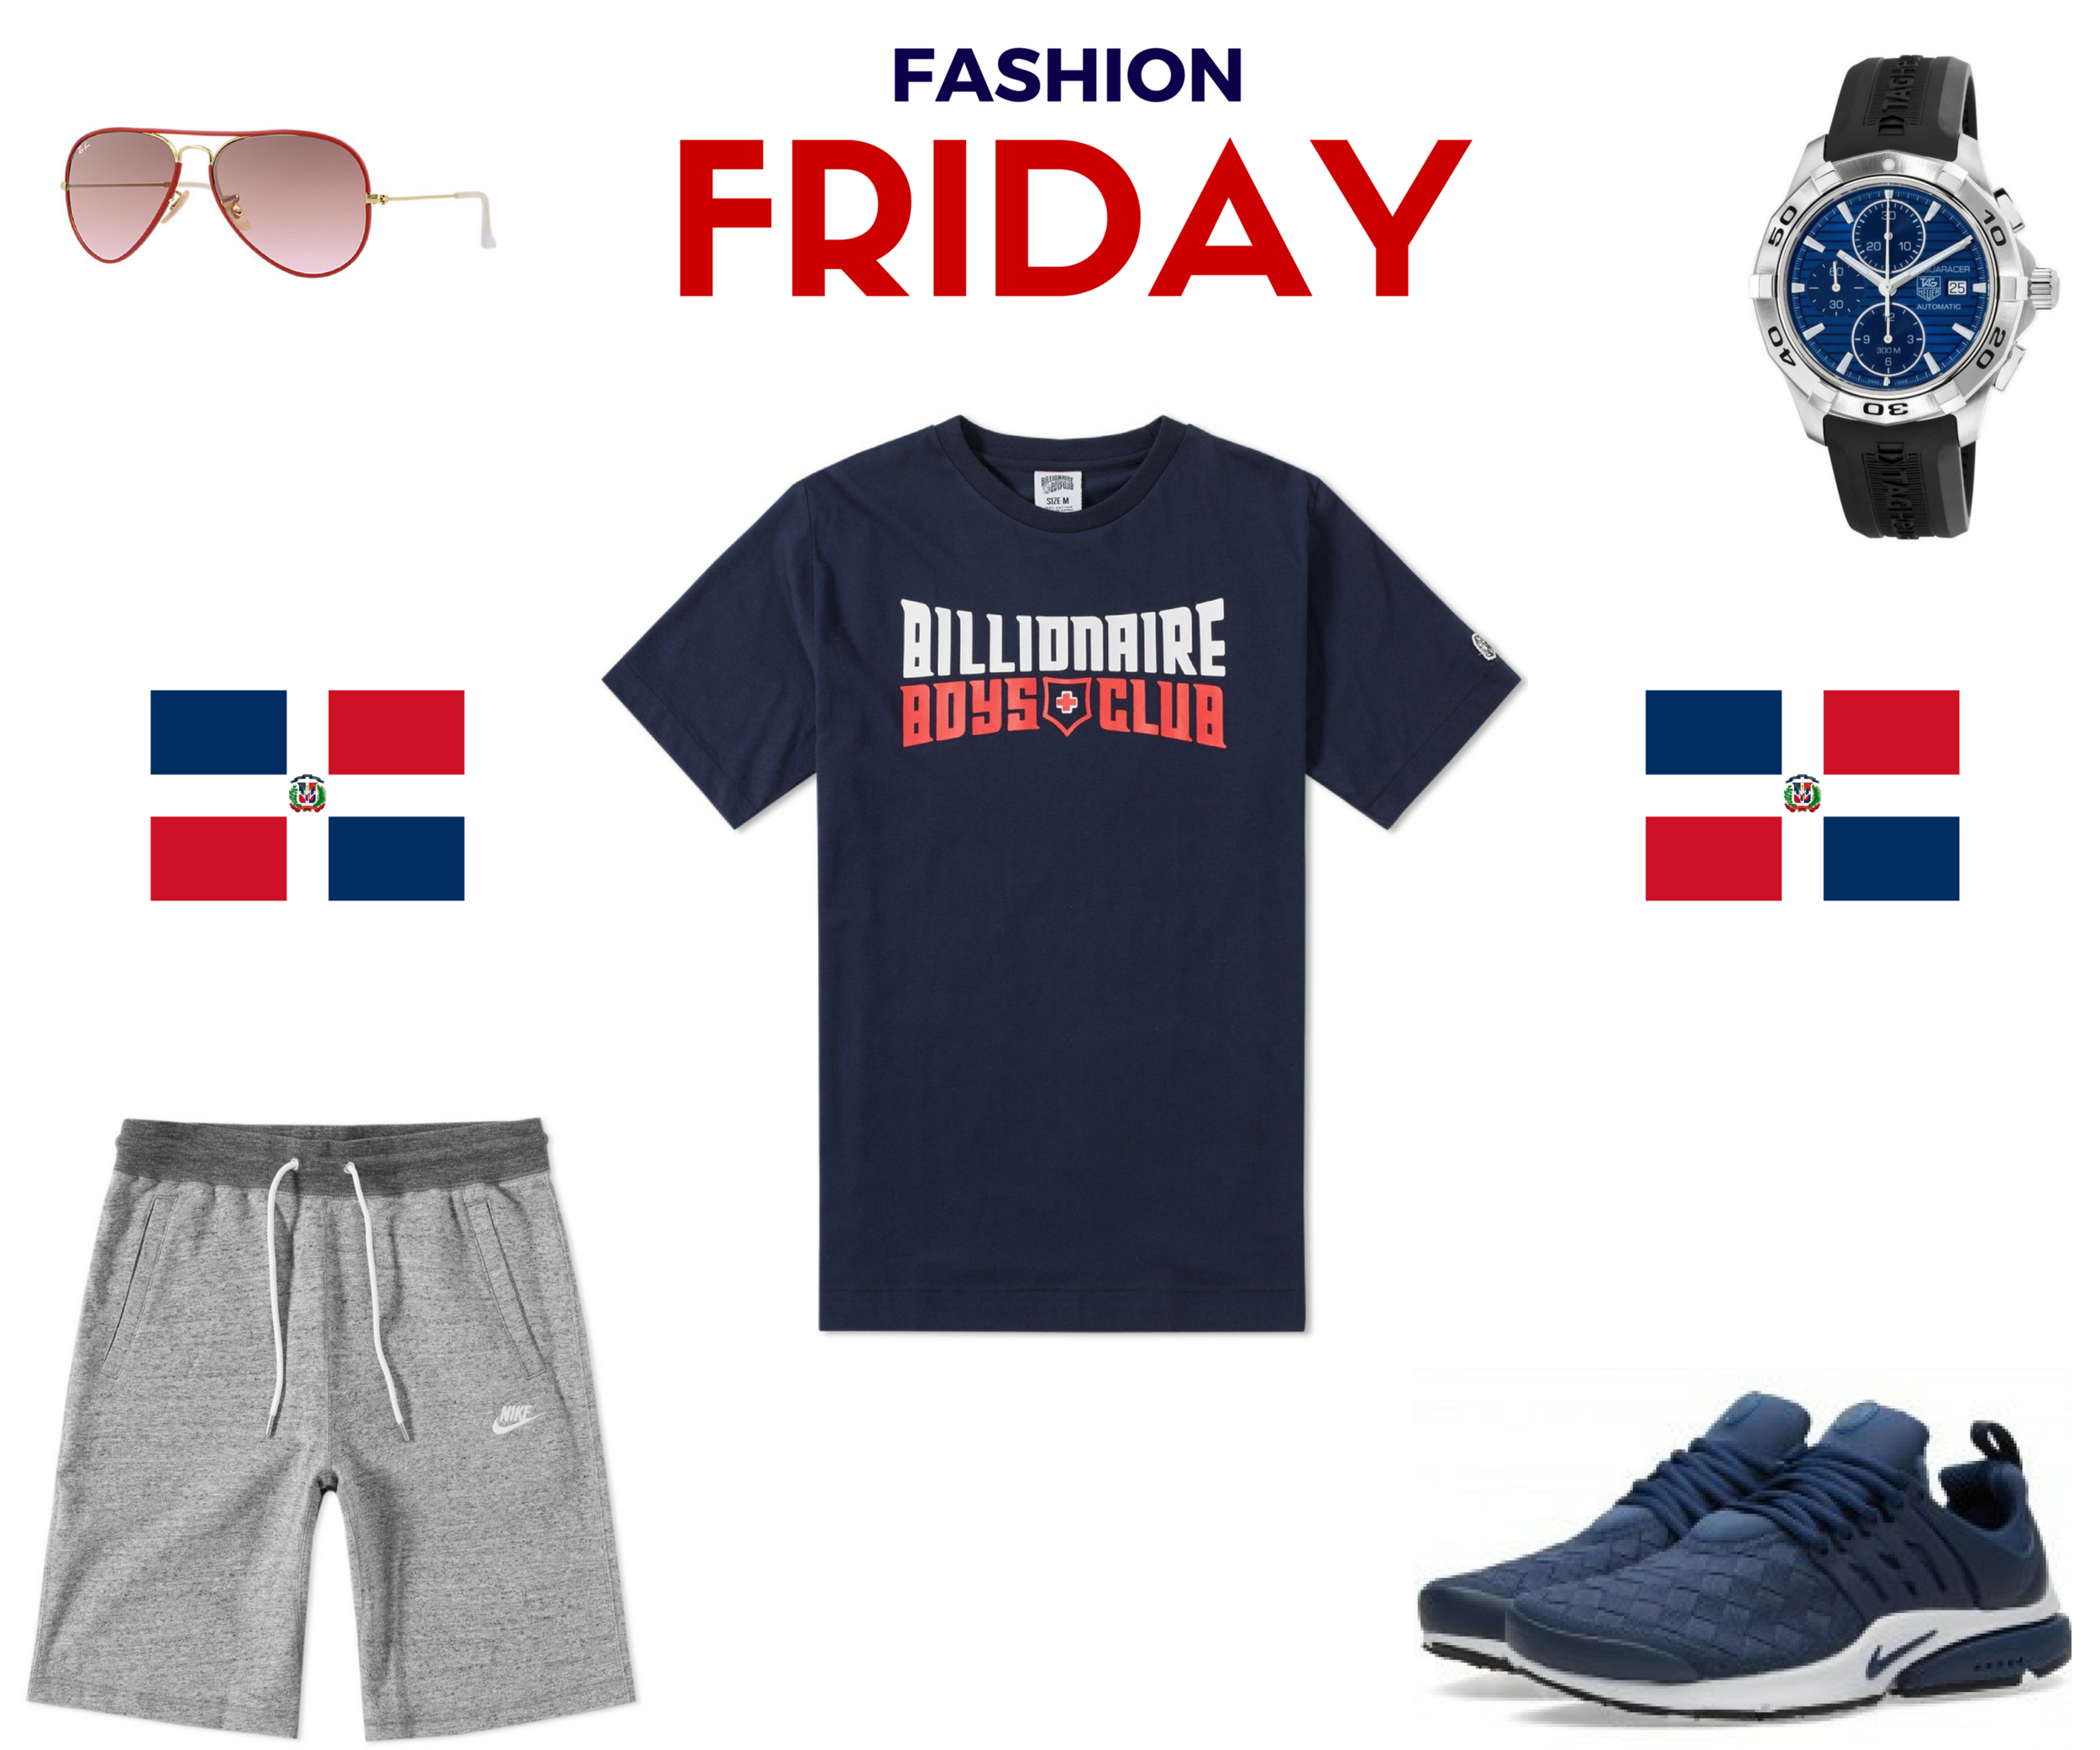 Thank God it's Friday!  This week we congratulate Alex Rodriguez on an amazing Career. Today Alex will play in his last game with the New York Yankees. Alex is 4 Home Runs short from becoming the 4th player in MLB History to reach The 700 Home Run Club! Good Luck and Gob Bless your family!   Ray Ban Sunglasses    BBC T-Shirt    Tag Heuer Watch    Nike Legacy Short    Nike Running Sneakers   By Danny Reyes  Photo By ARod